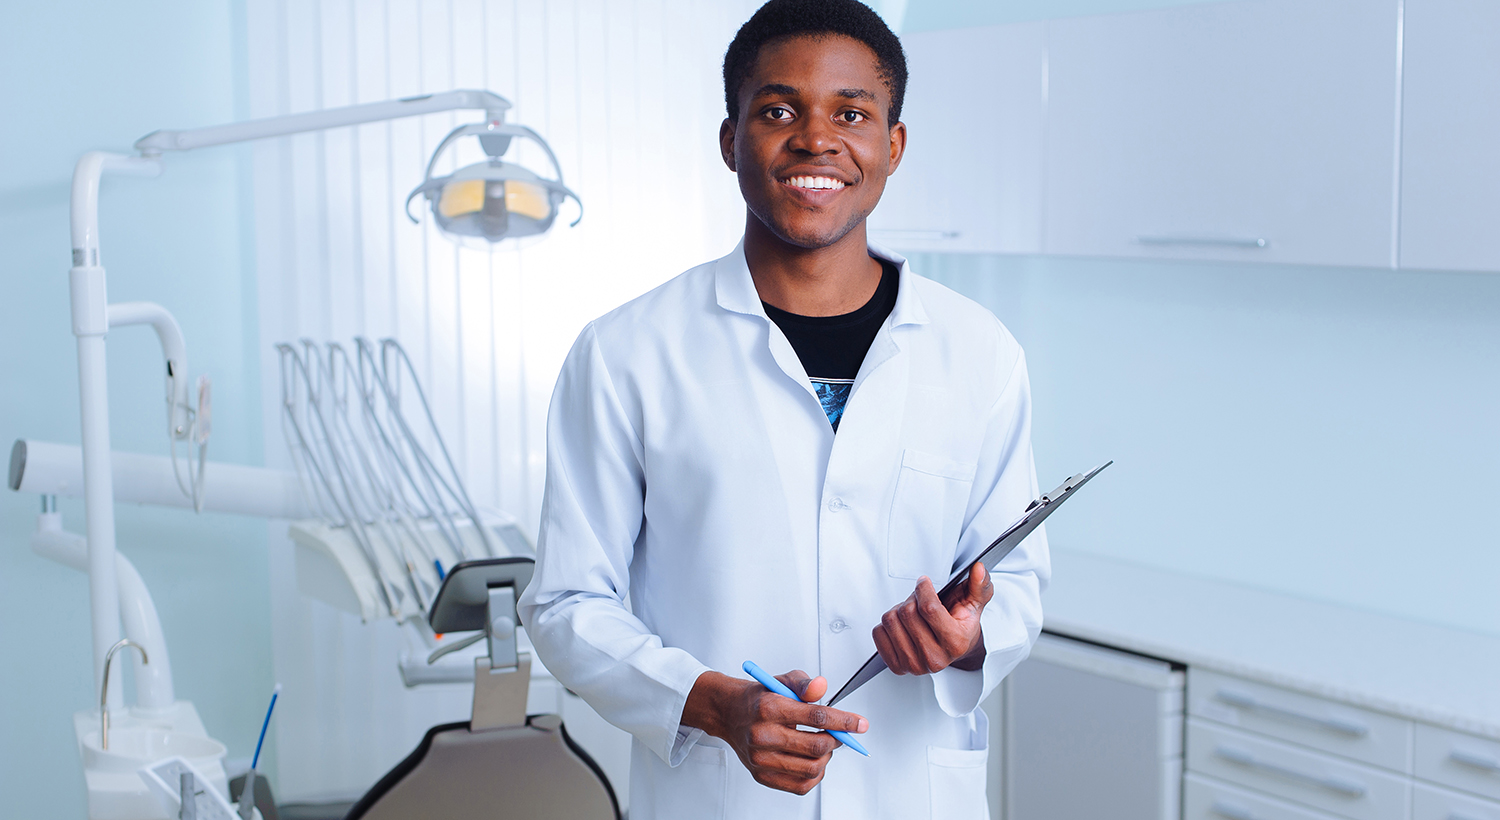 African dentist smiling - healthcare in the gambia